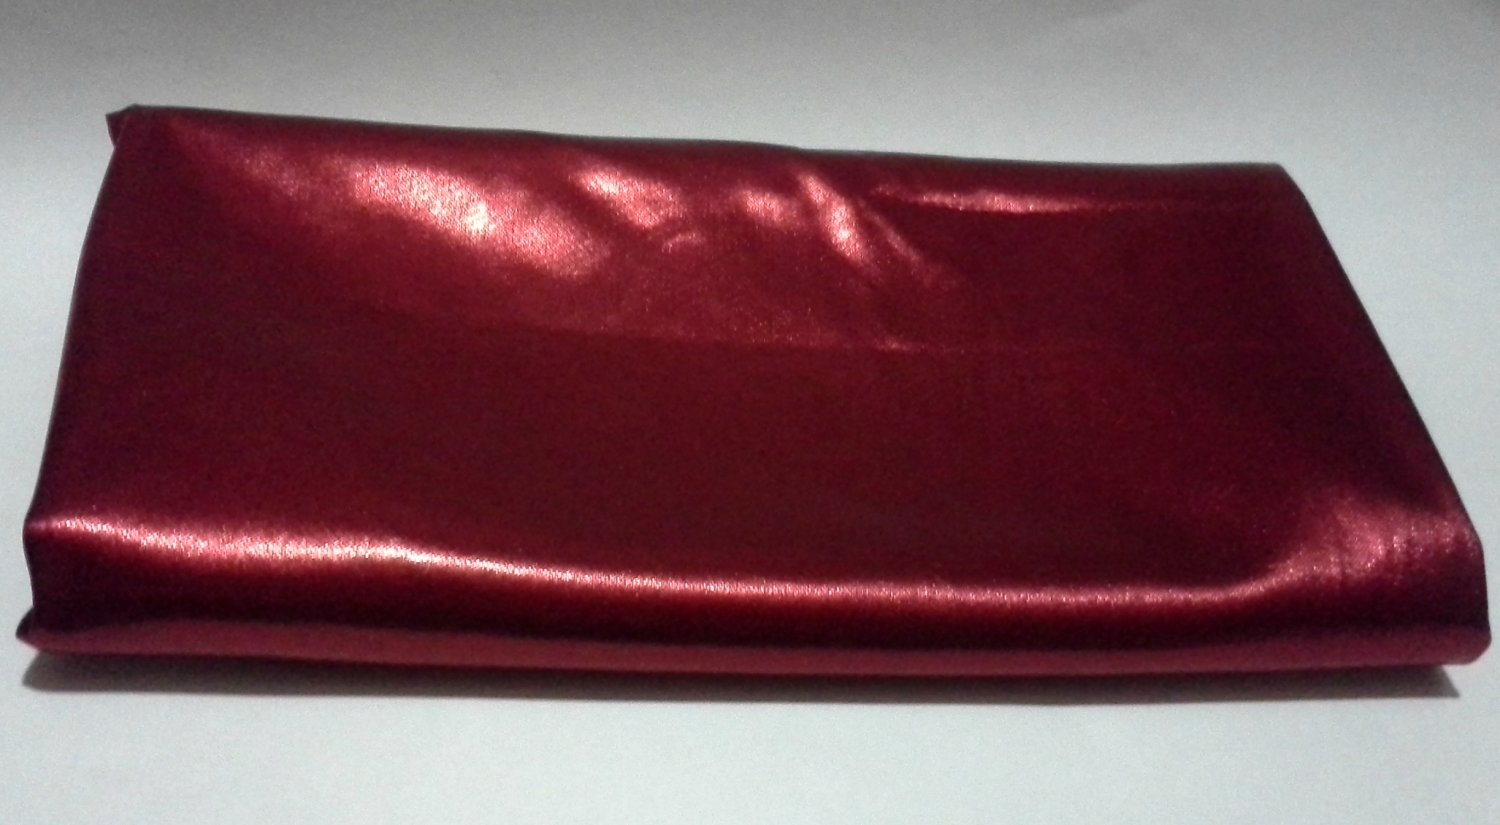 2-1/3 yards Solid Red Stretch Lycra Metallic Look Fabric Knit for Costumes Dolls Dance